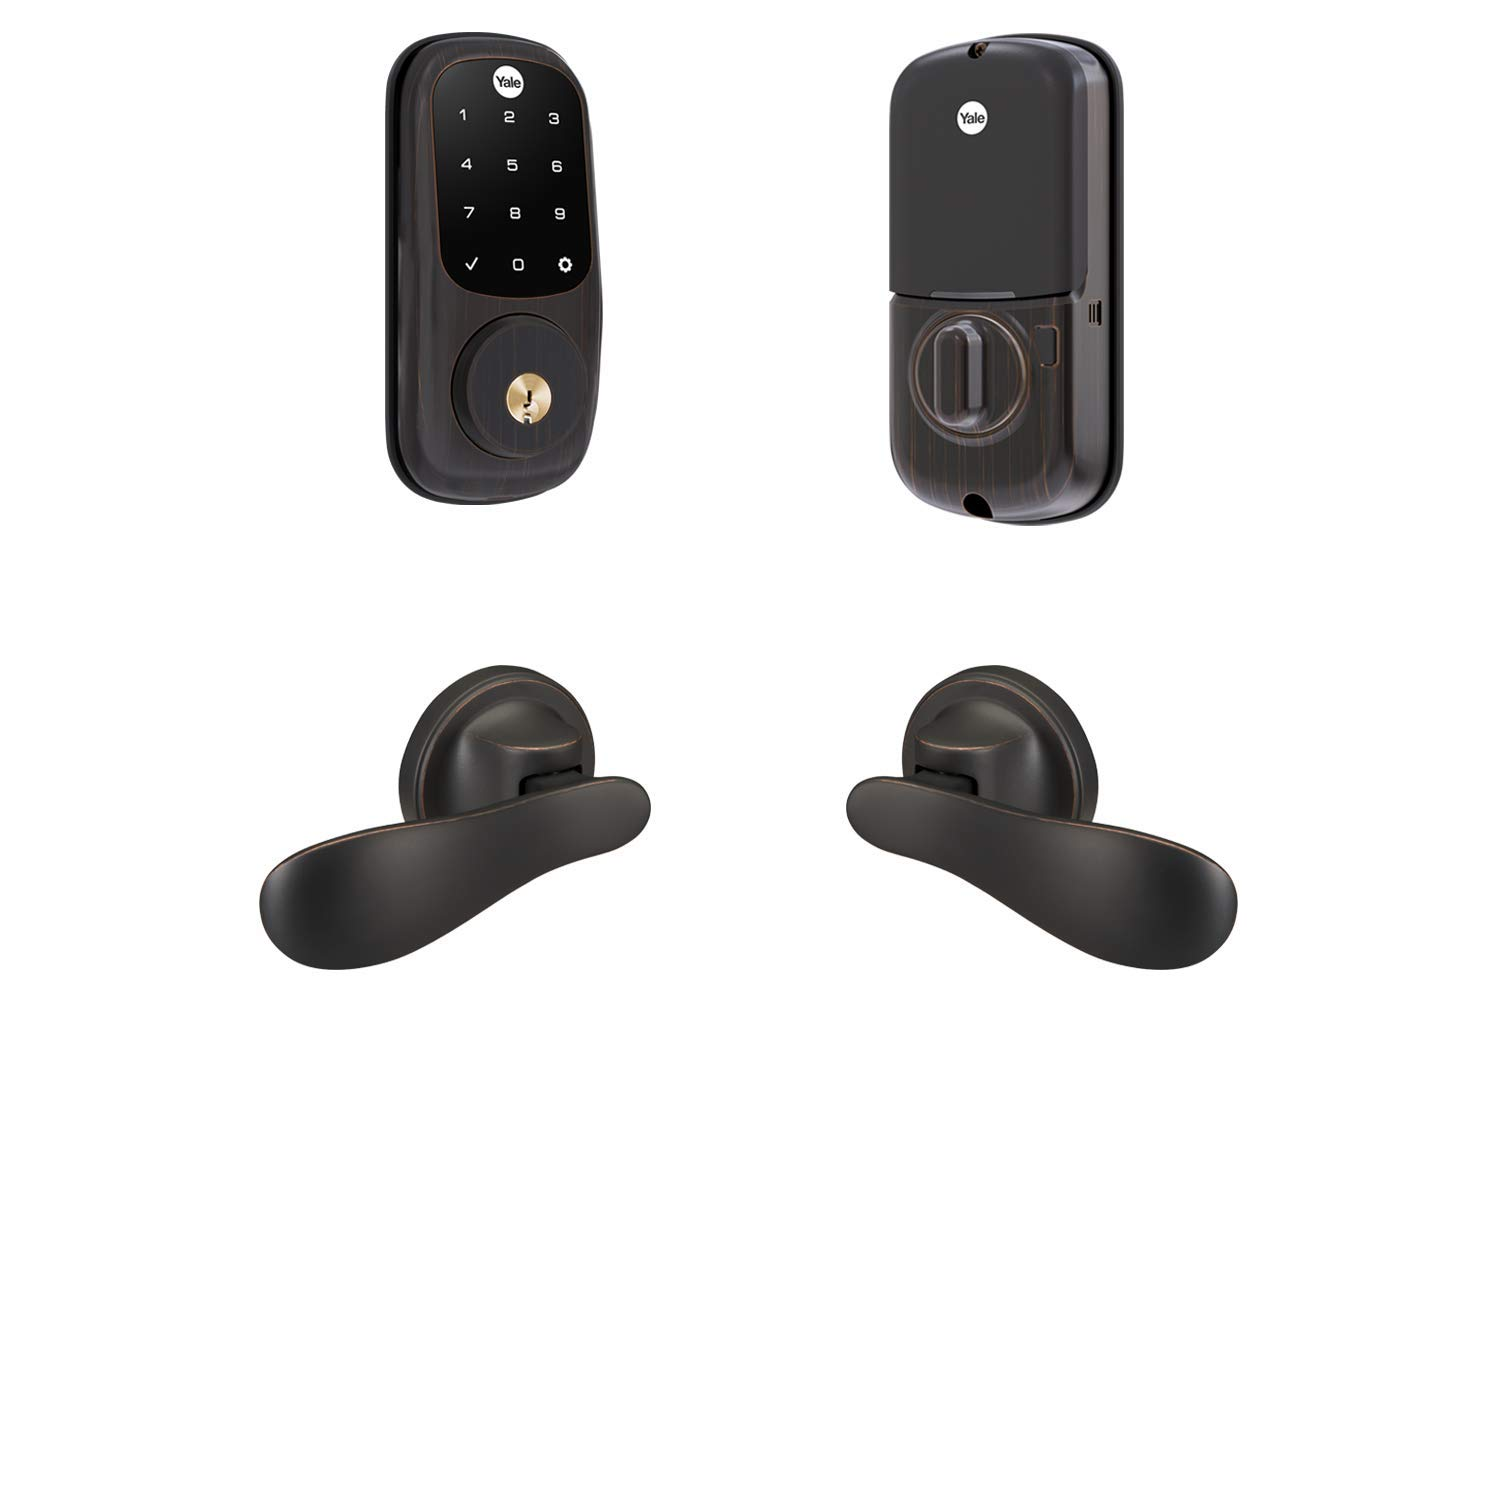 Yale Assure Lock SL, Connected by August with Kincaid BK Lever - Works with Amazon Alexa, Google Assistant and Home Kit